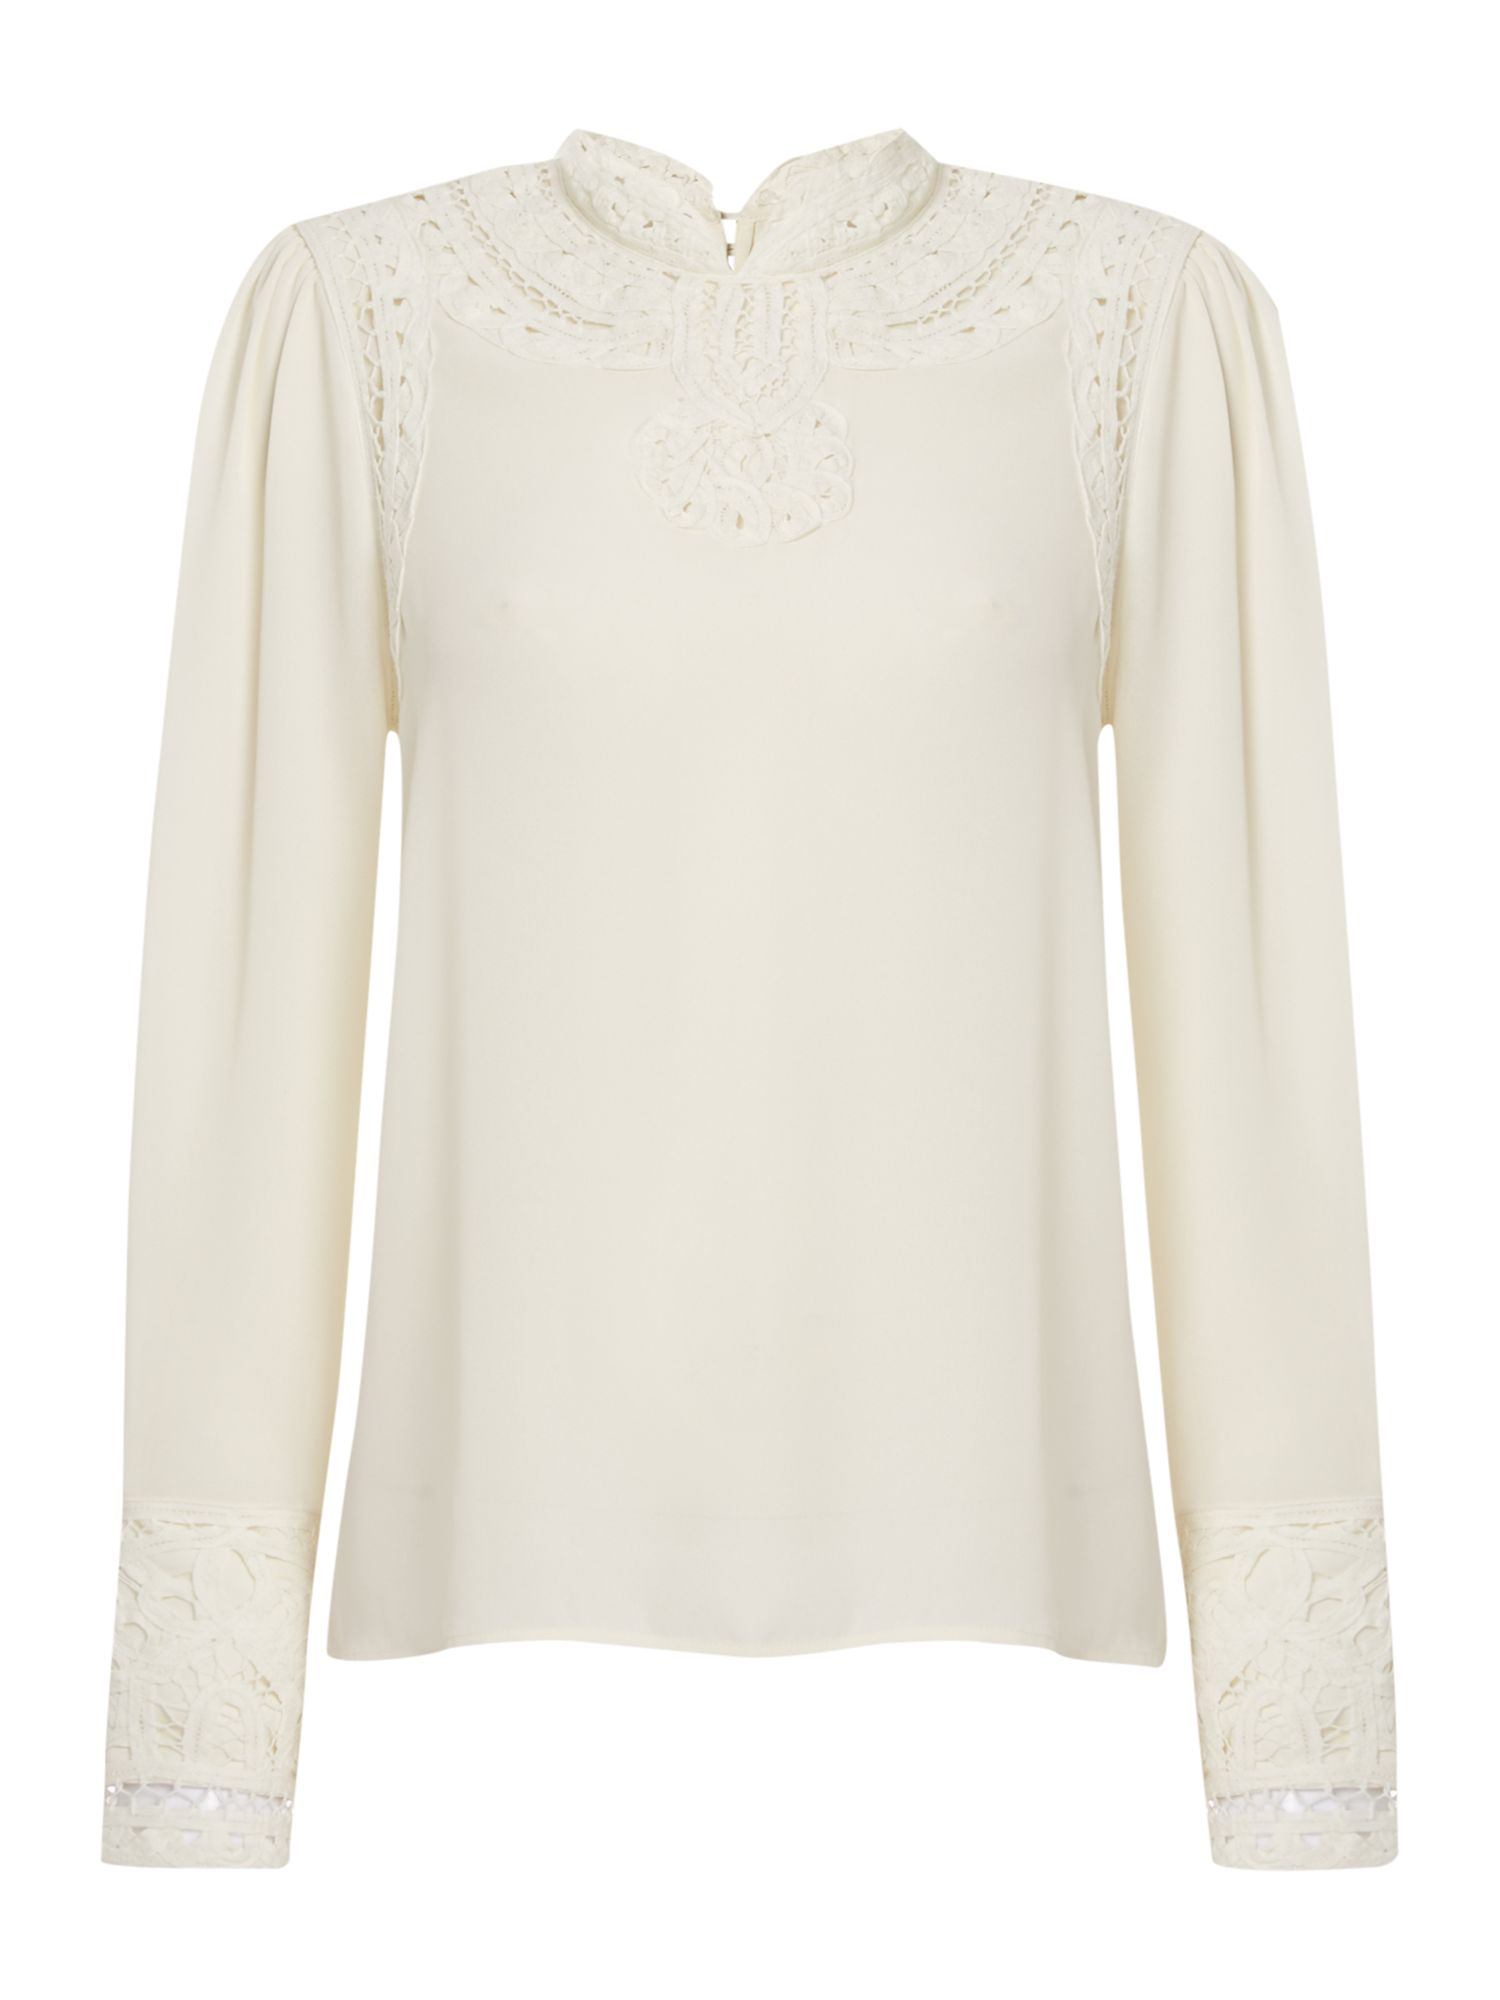 Victorian Style Blouses, Tops, Jackets Biba Lace detail victoriana blouse £39.50 AT vintagedancer.com